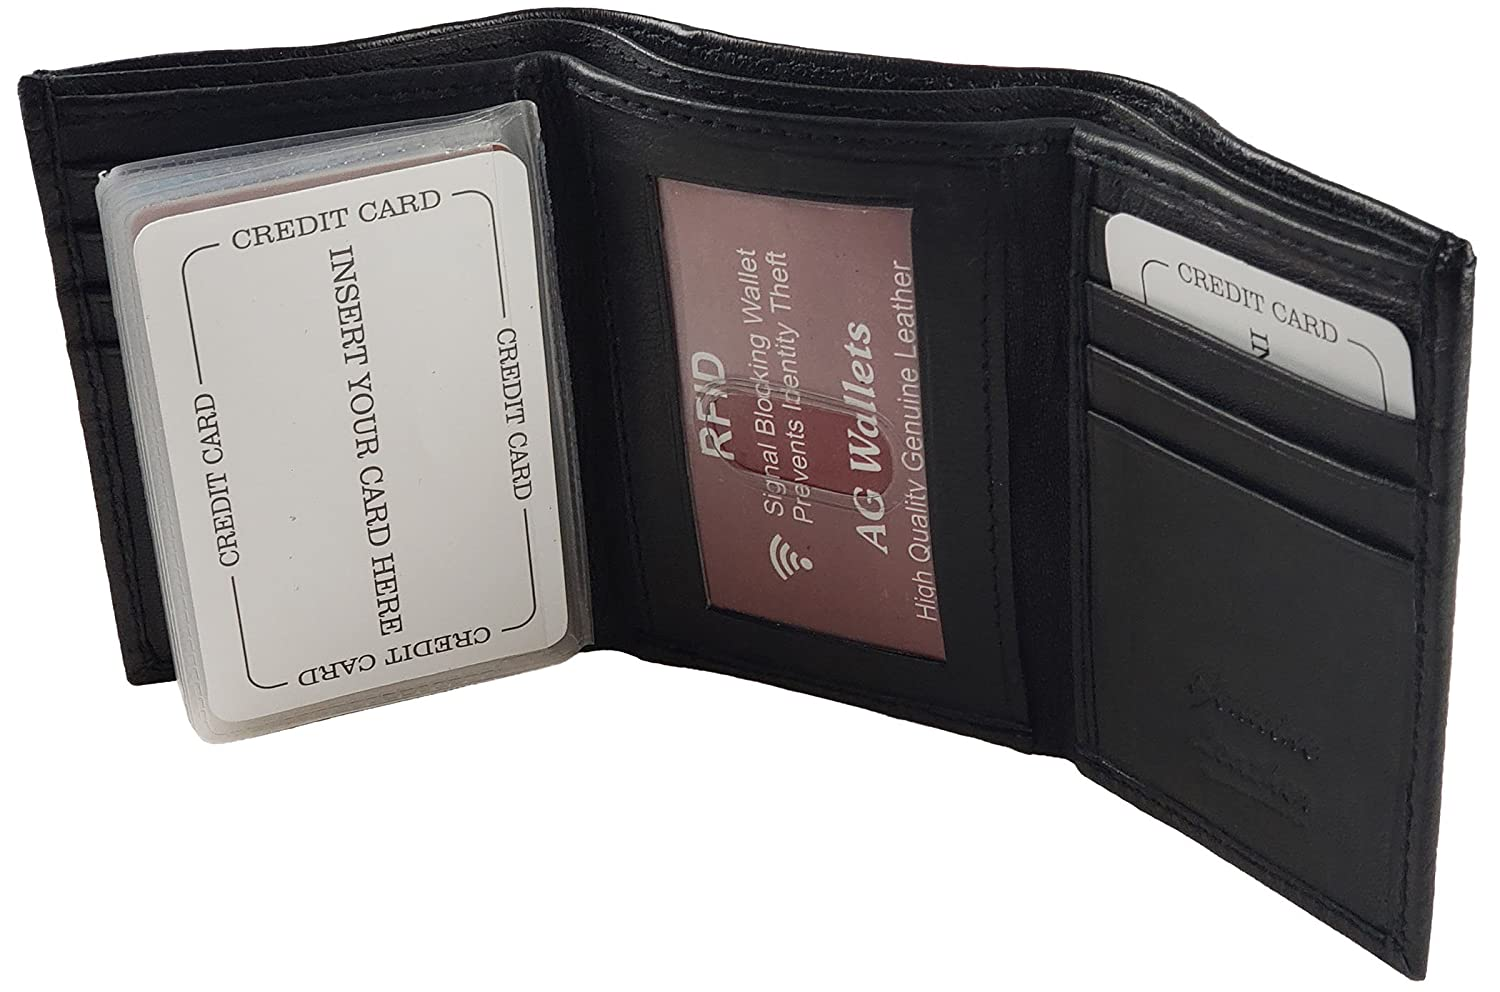 a5f21aea1600 AG Wallets RFID Signal Blocking Genuine Leather Trifold Wallet for Men  (Black)